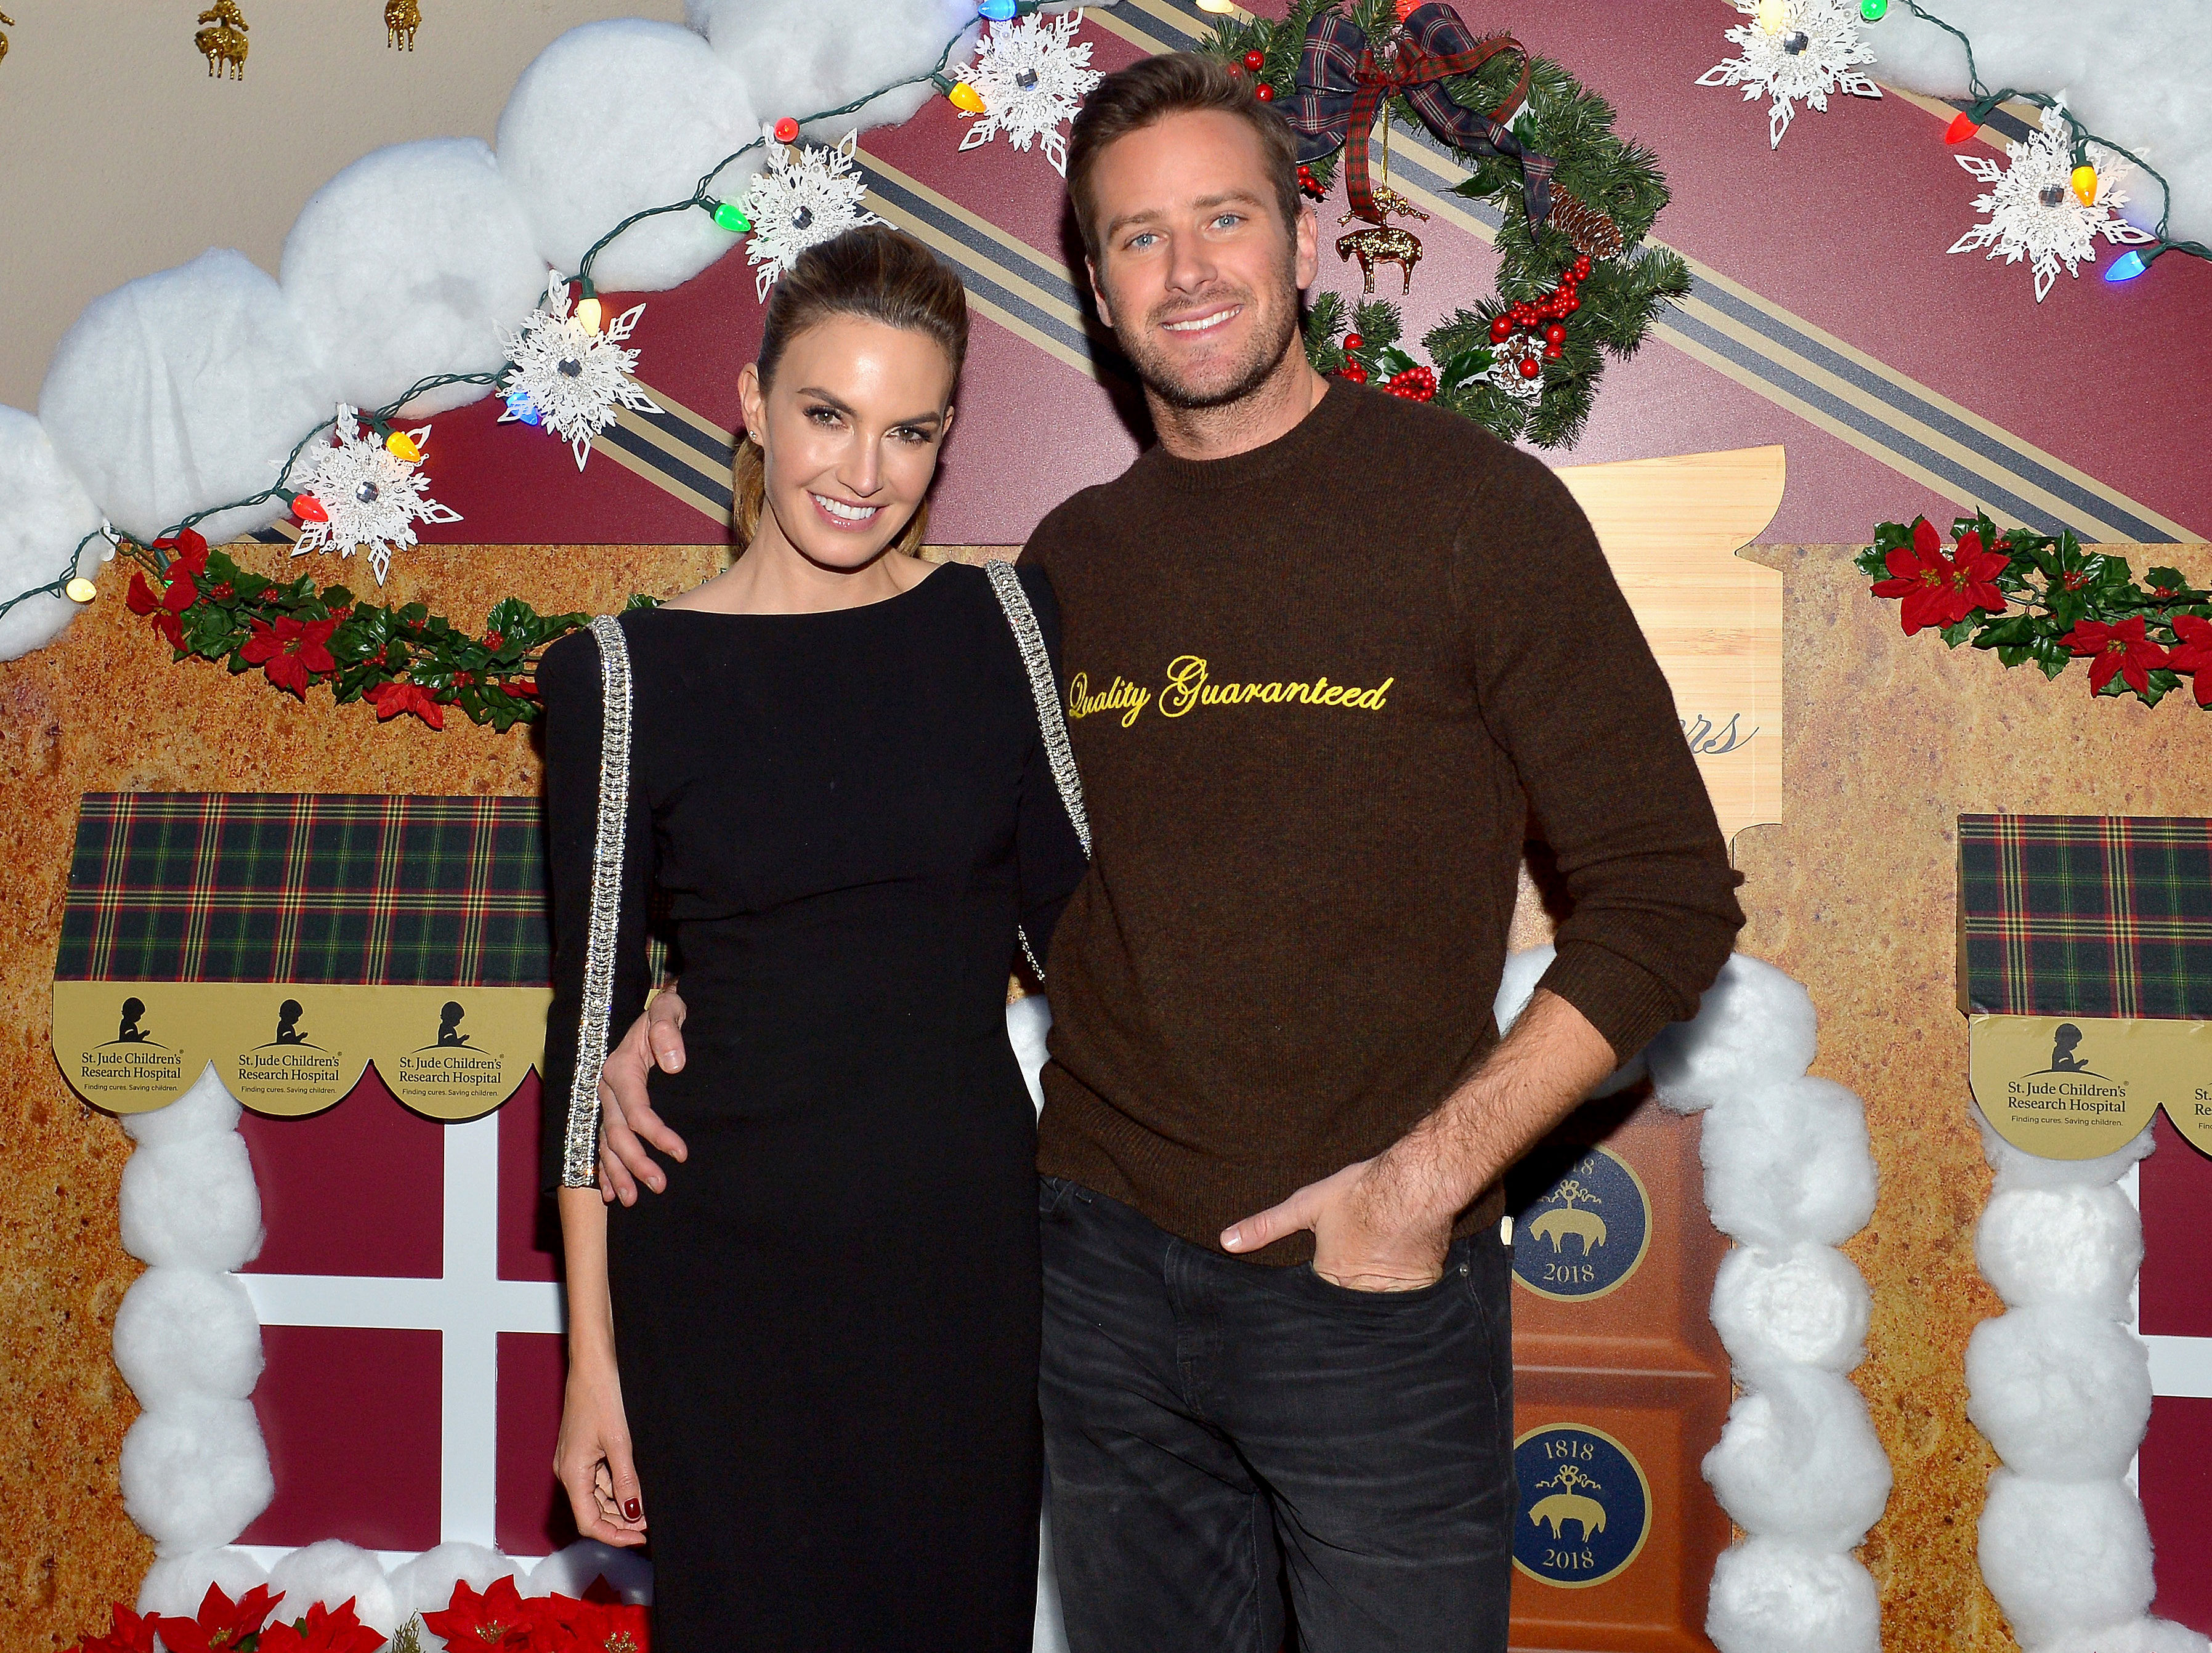 Armie Hammer and Elizabeth Chambers' Holiday Plans - lizabeth Chambers (L) and Armie Hammer attend the Brooks Brothers and St Jude Children's Research Hospital Annual Holiday Celebration at the Beverly Wilshire Four Seasons Hotel on December 9, 2018 in Beverly Hills, California.